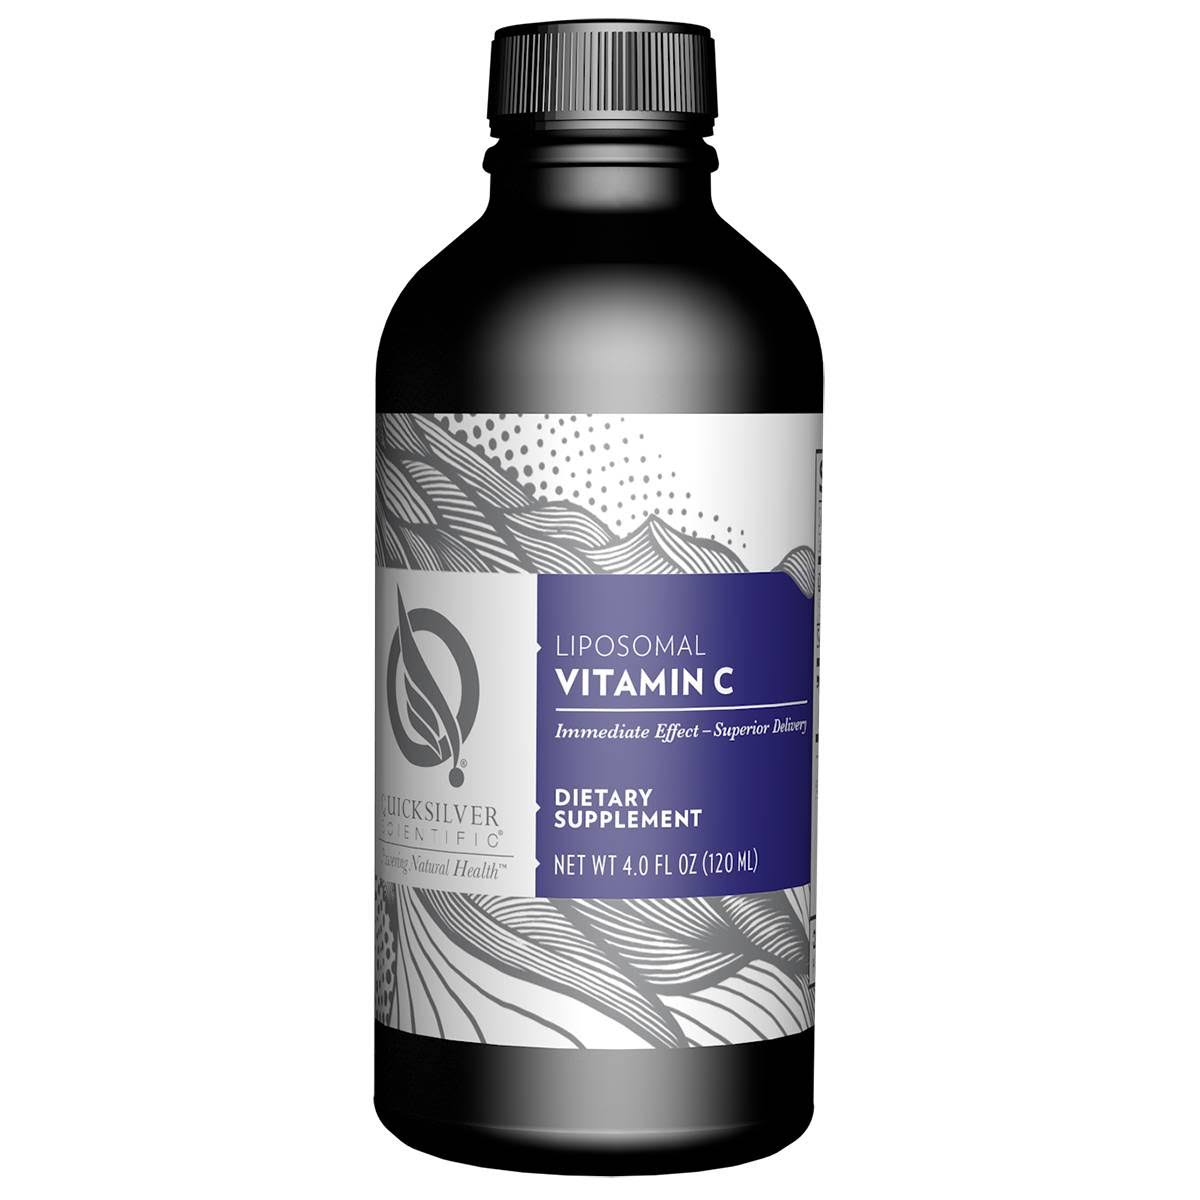 Quicksilver Scientific Liposomal Vitamin C - 4oz